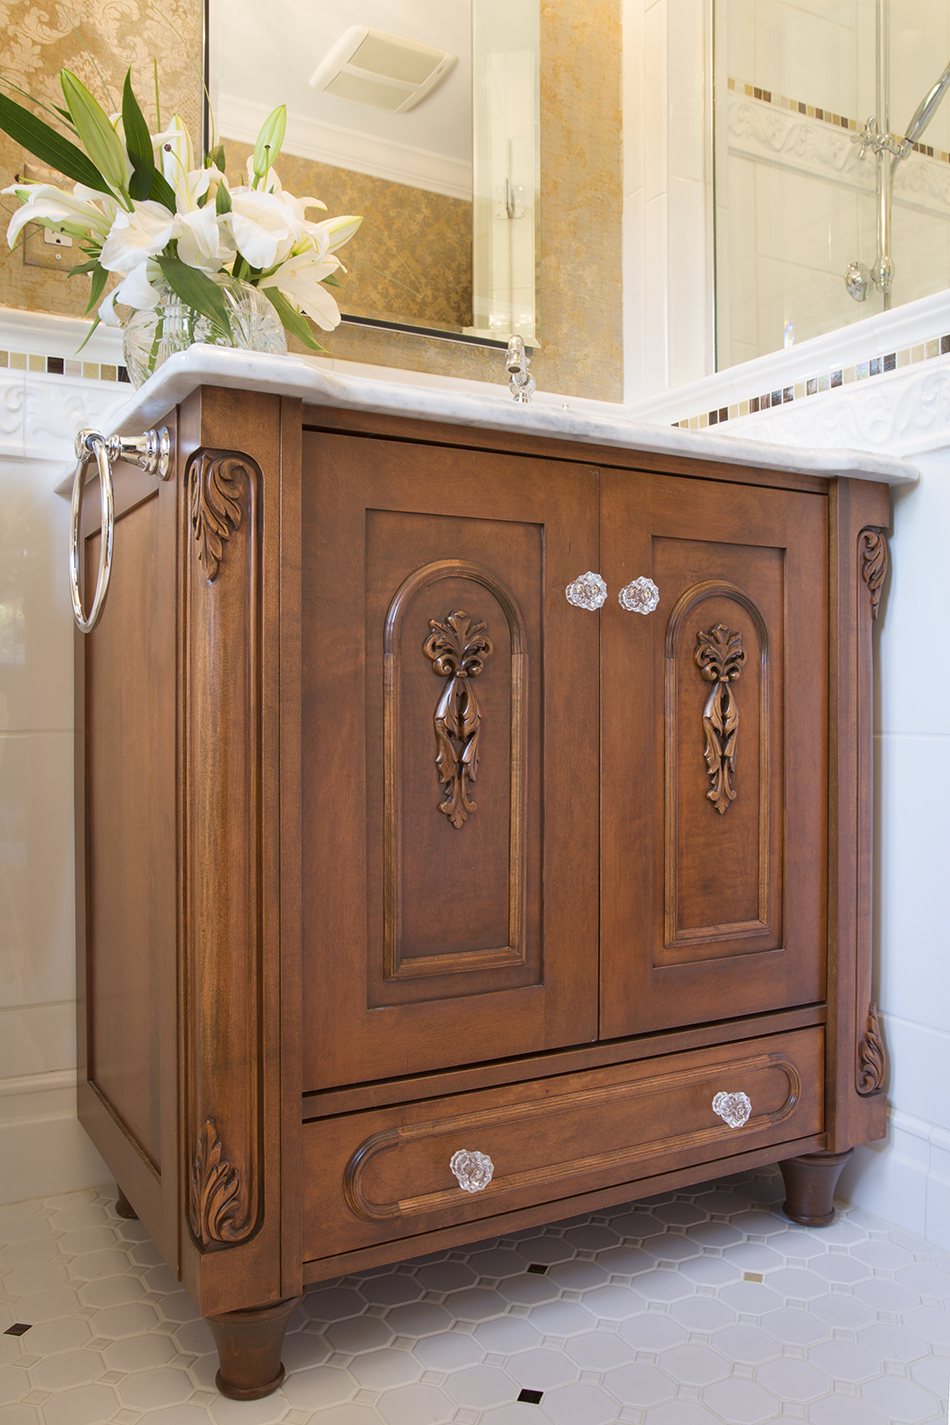 vanity-antique-built-in-custom-shorewood-wisconsin-classic-bathroom-remodel